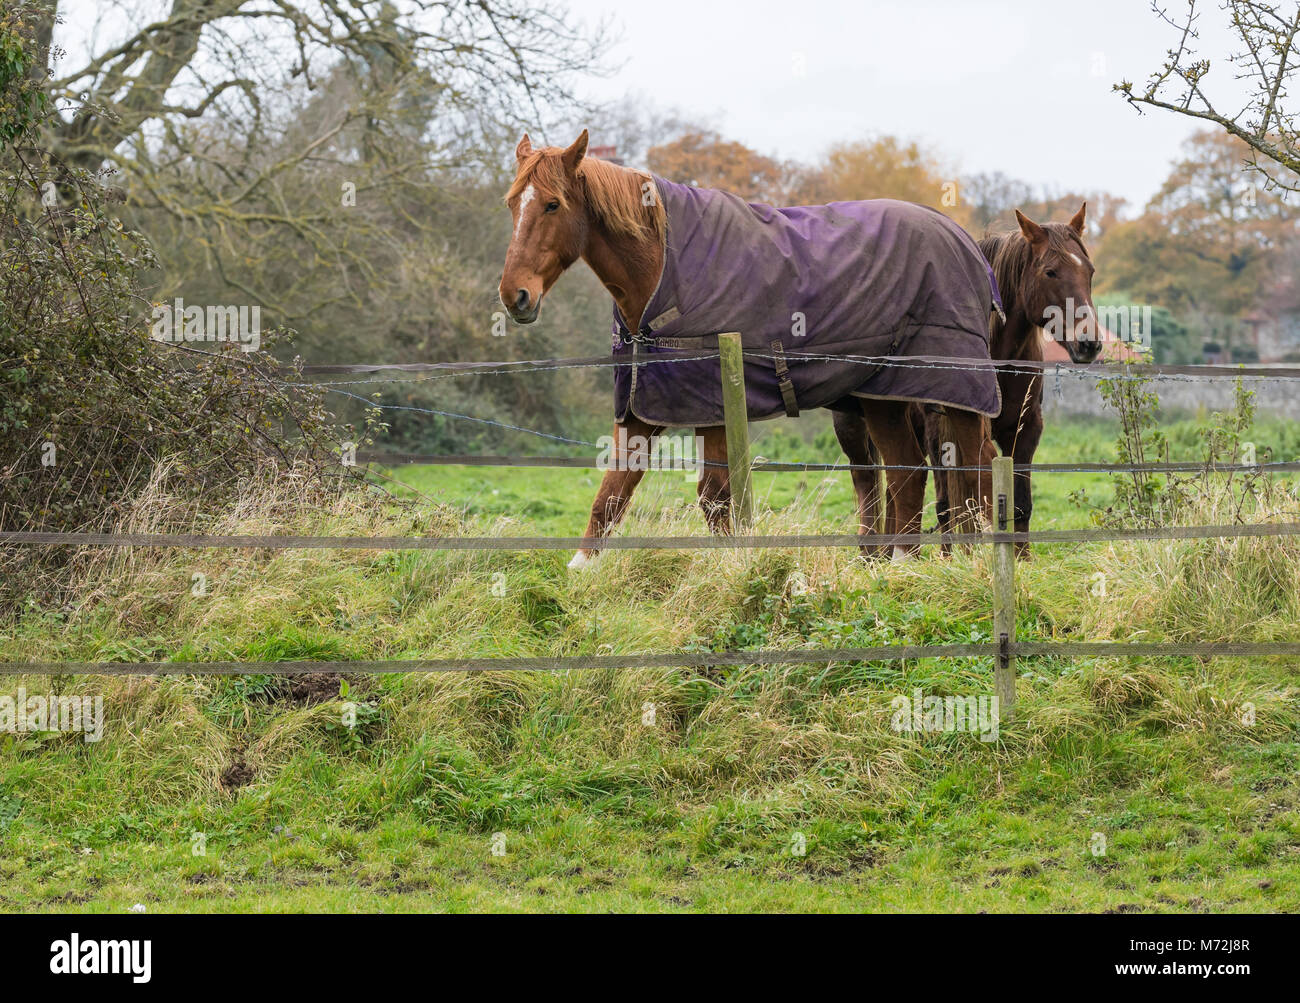 Cold horses standing in a field wearing equine rugs in Winter in the UK. - Stock Image